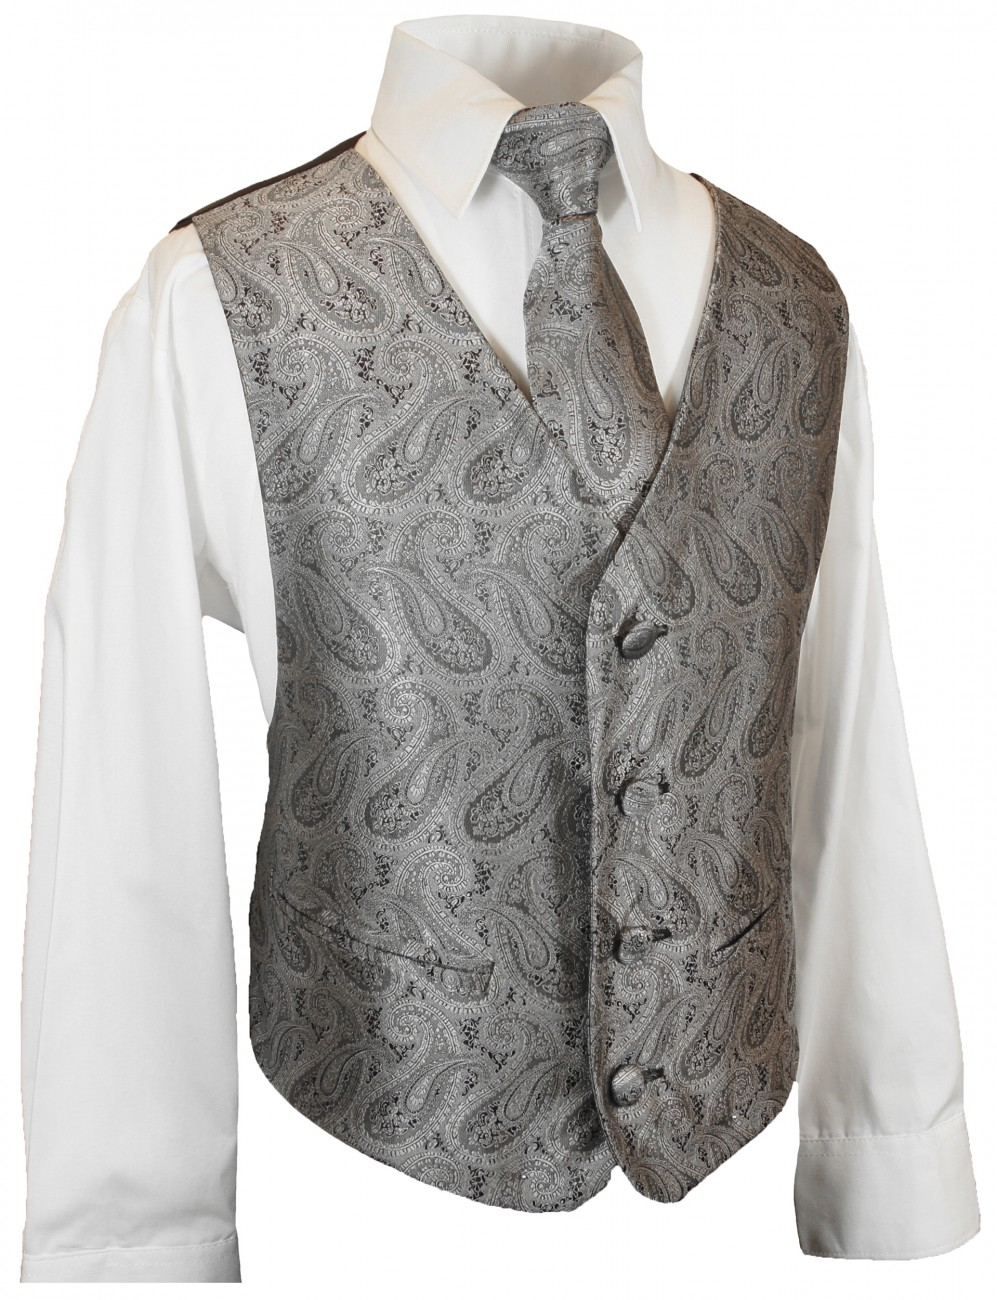 Partner combi - black and gray wedding suit with waistcoat set and shirt + boys suit and vest set